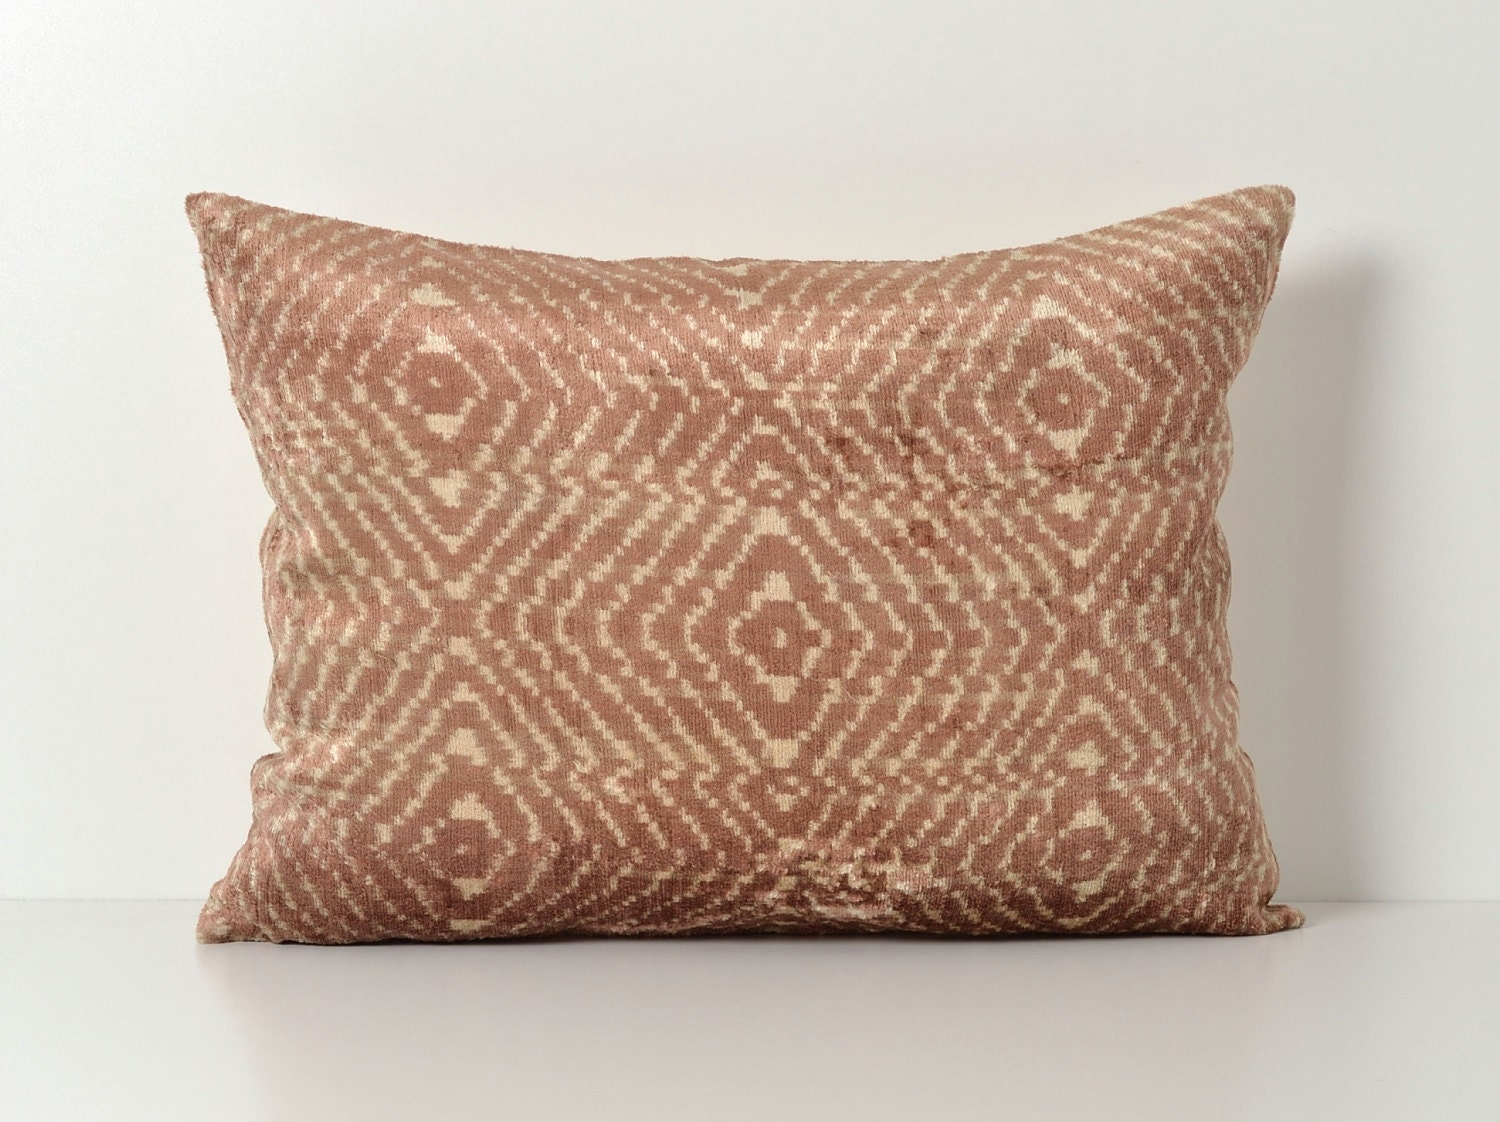 Throw Pillows For Brown Couch : Brown Ikat Pillow Ikat Pillows Decorative Throw Pillow Couch